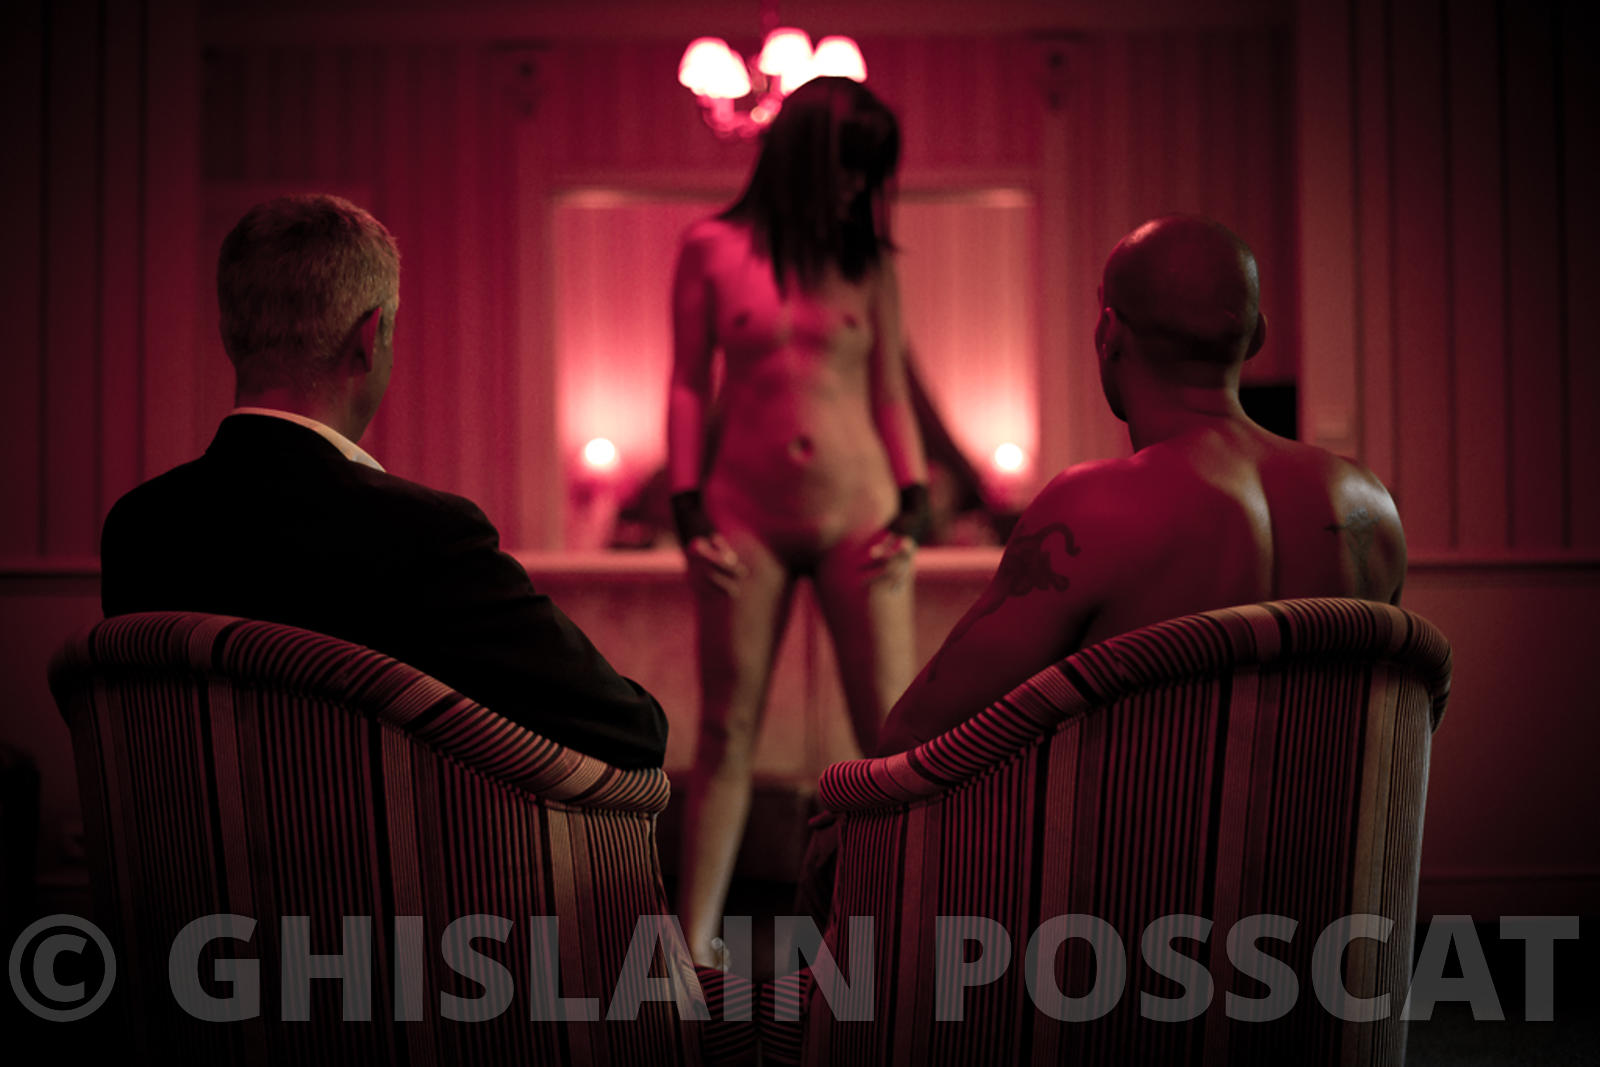 Photo bdsm - couple photo sm,  - photo fetish - photographe fetish, photographe bdsm - 2 hommes regardent une femme nue eroti...